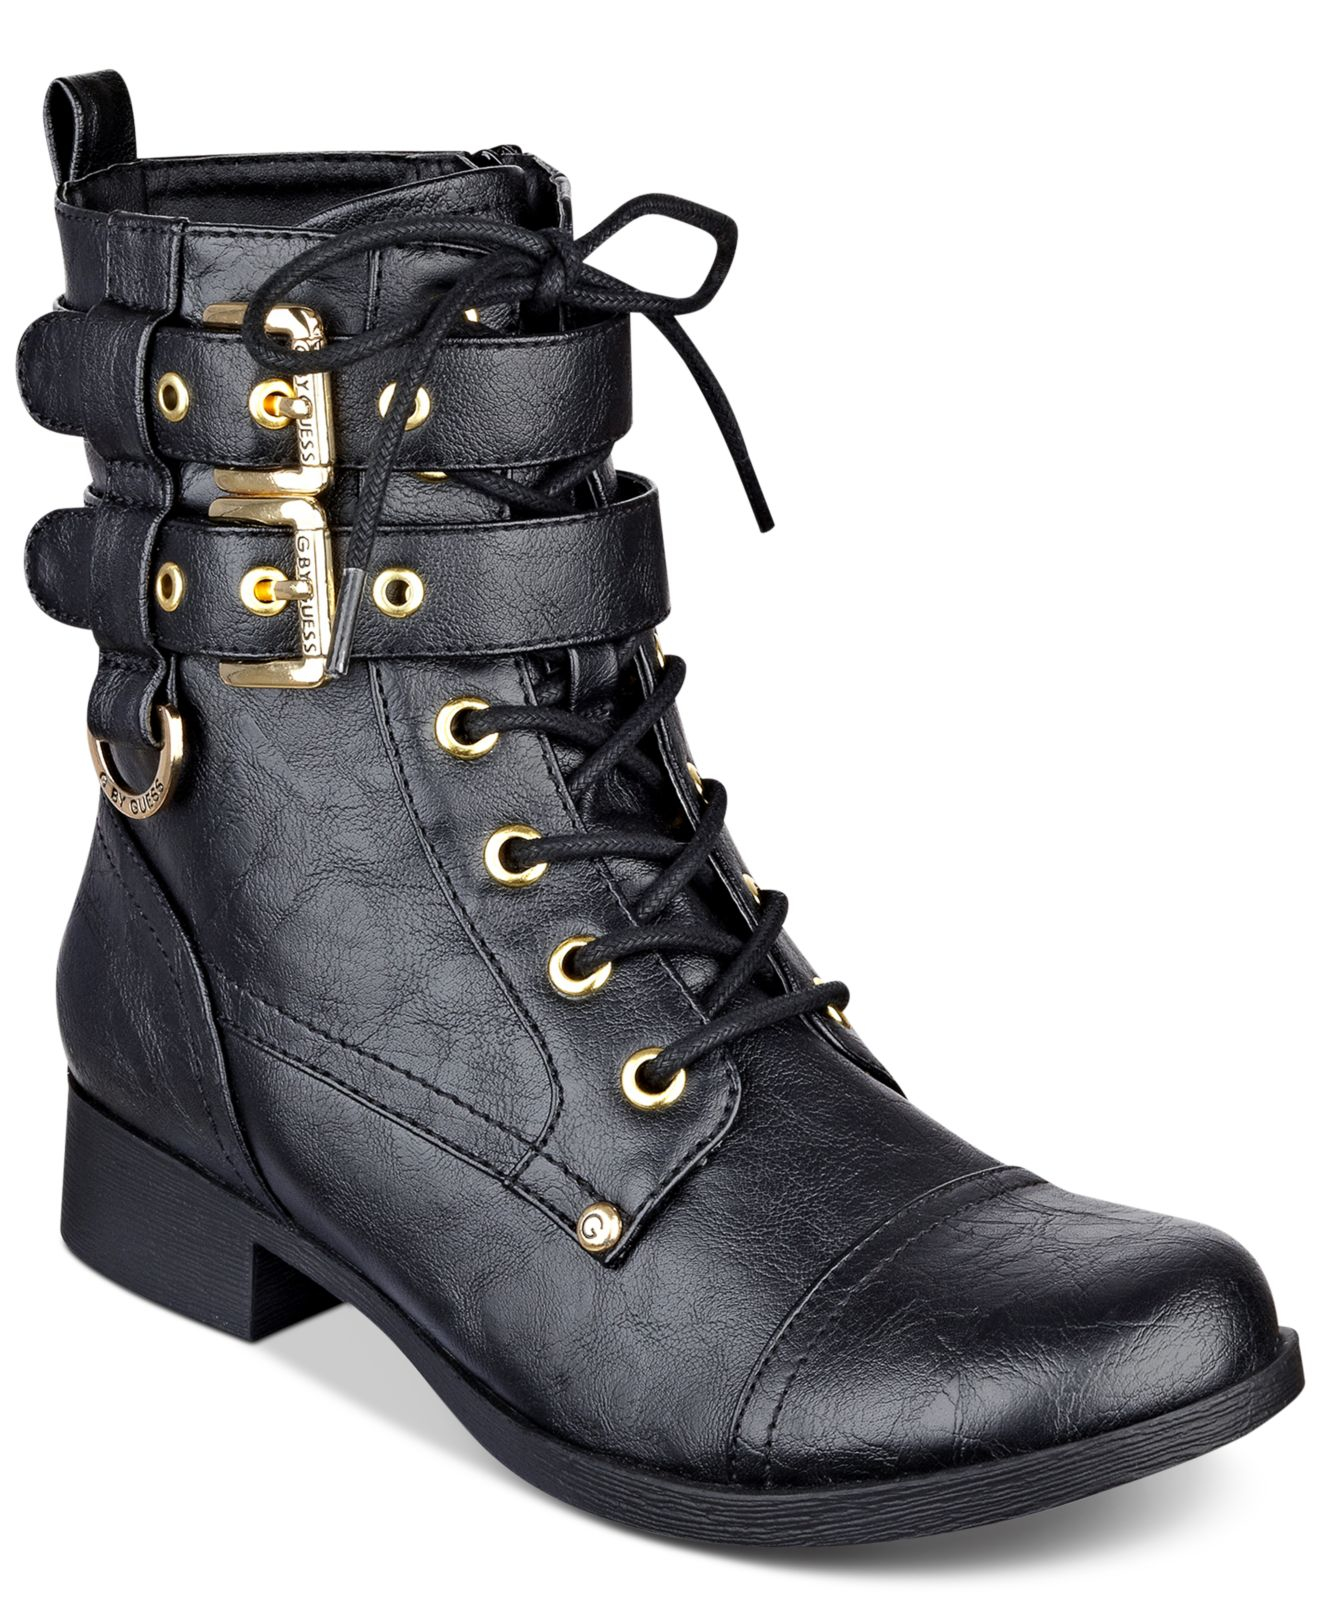 Bell Lace-up Combat Boots in Black